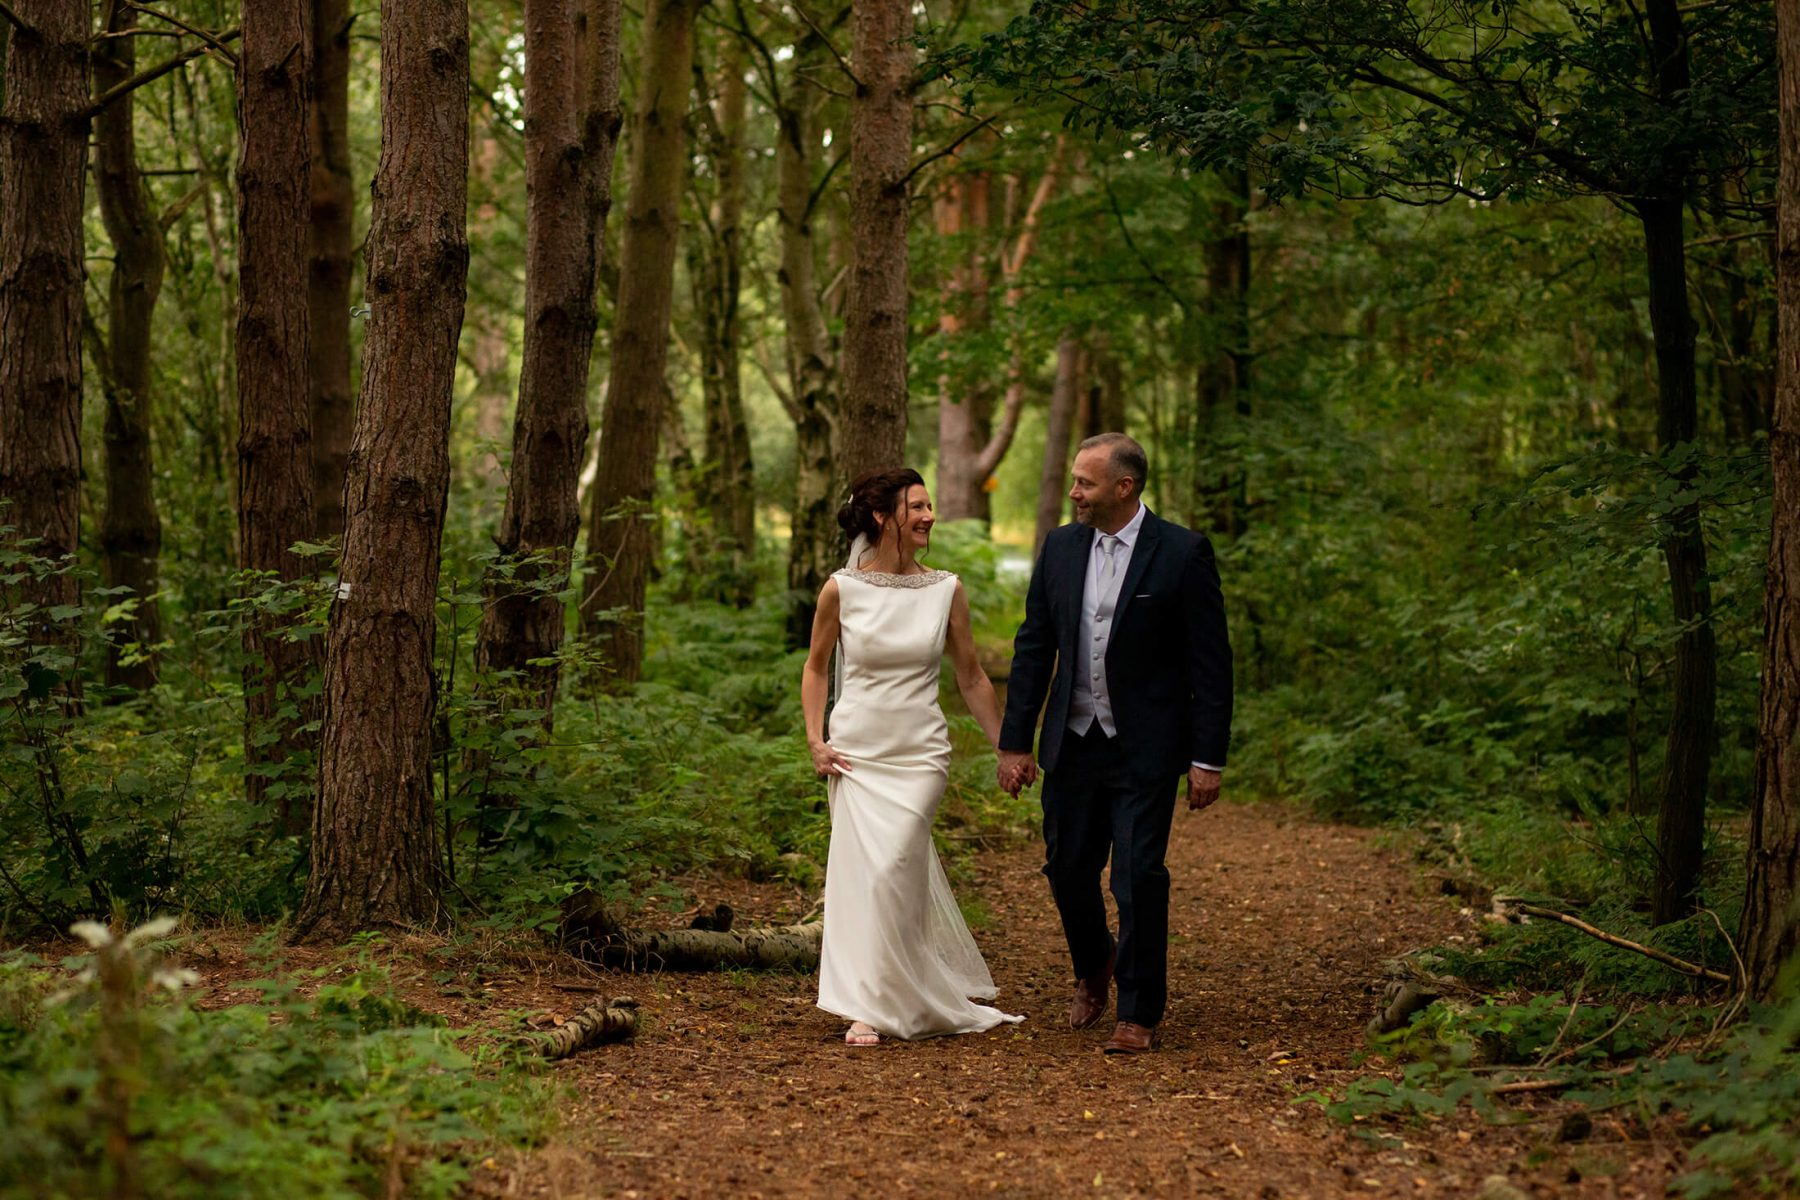 The bride and groom walk through the woods.